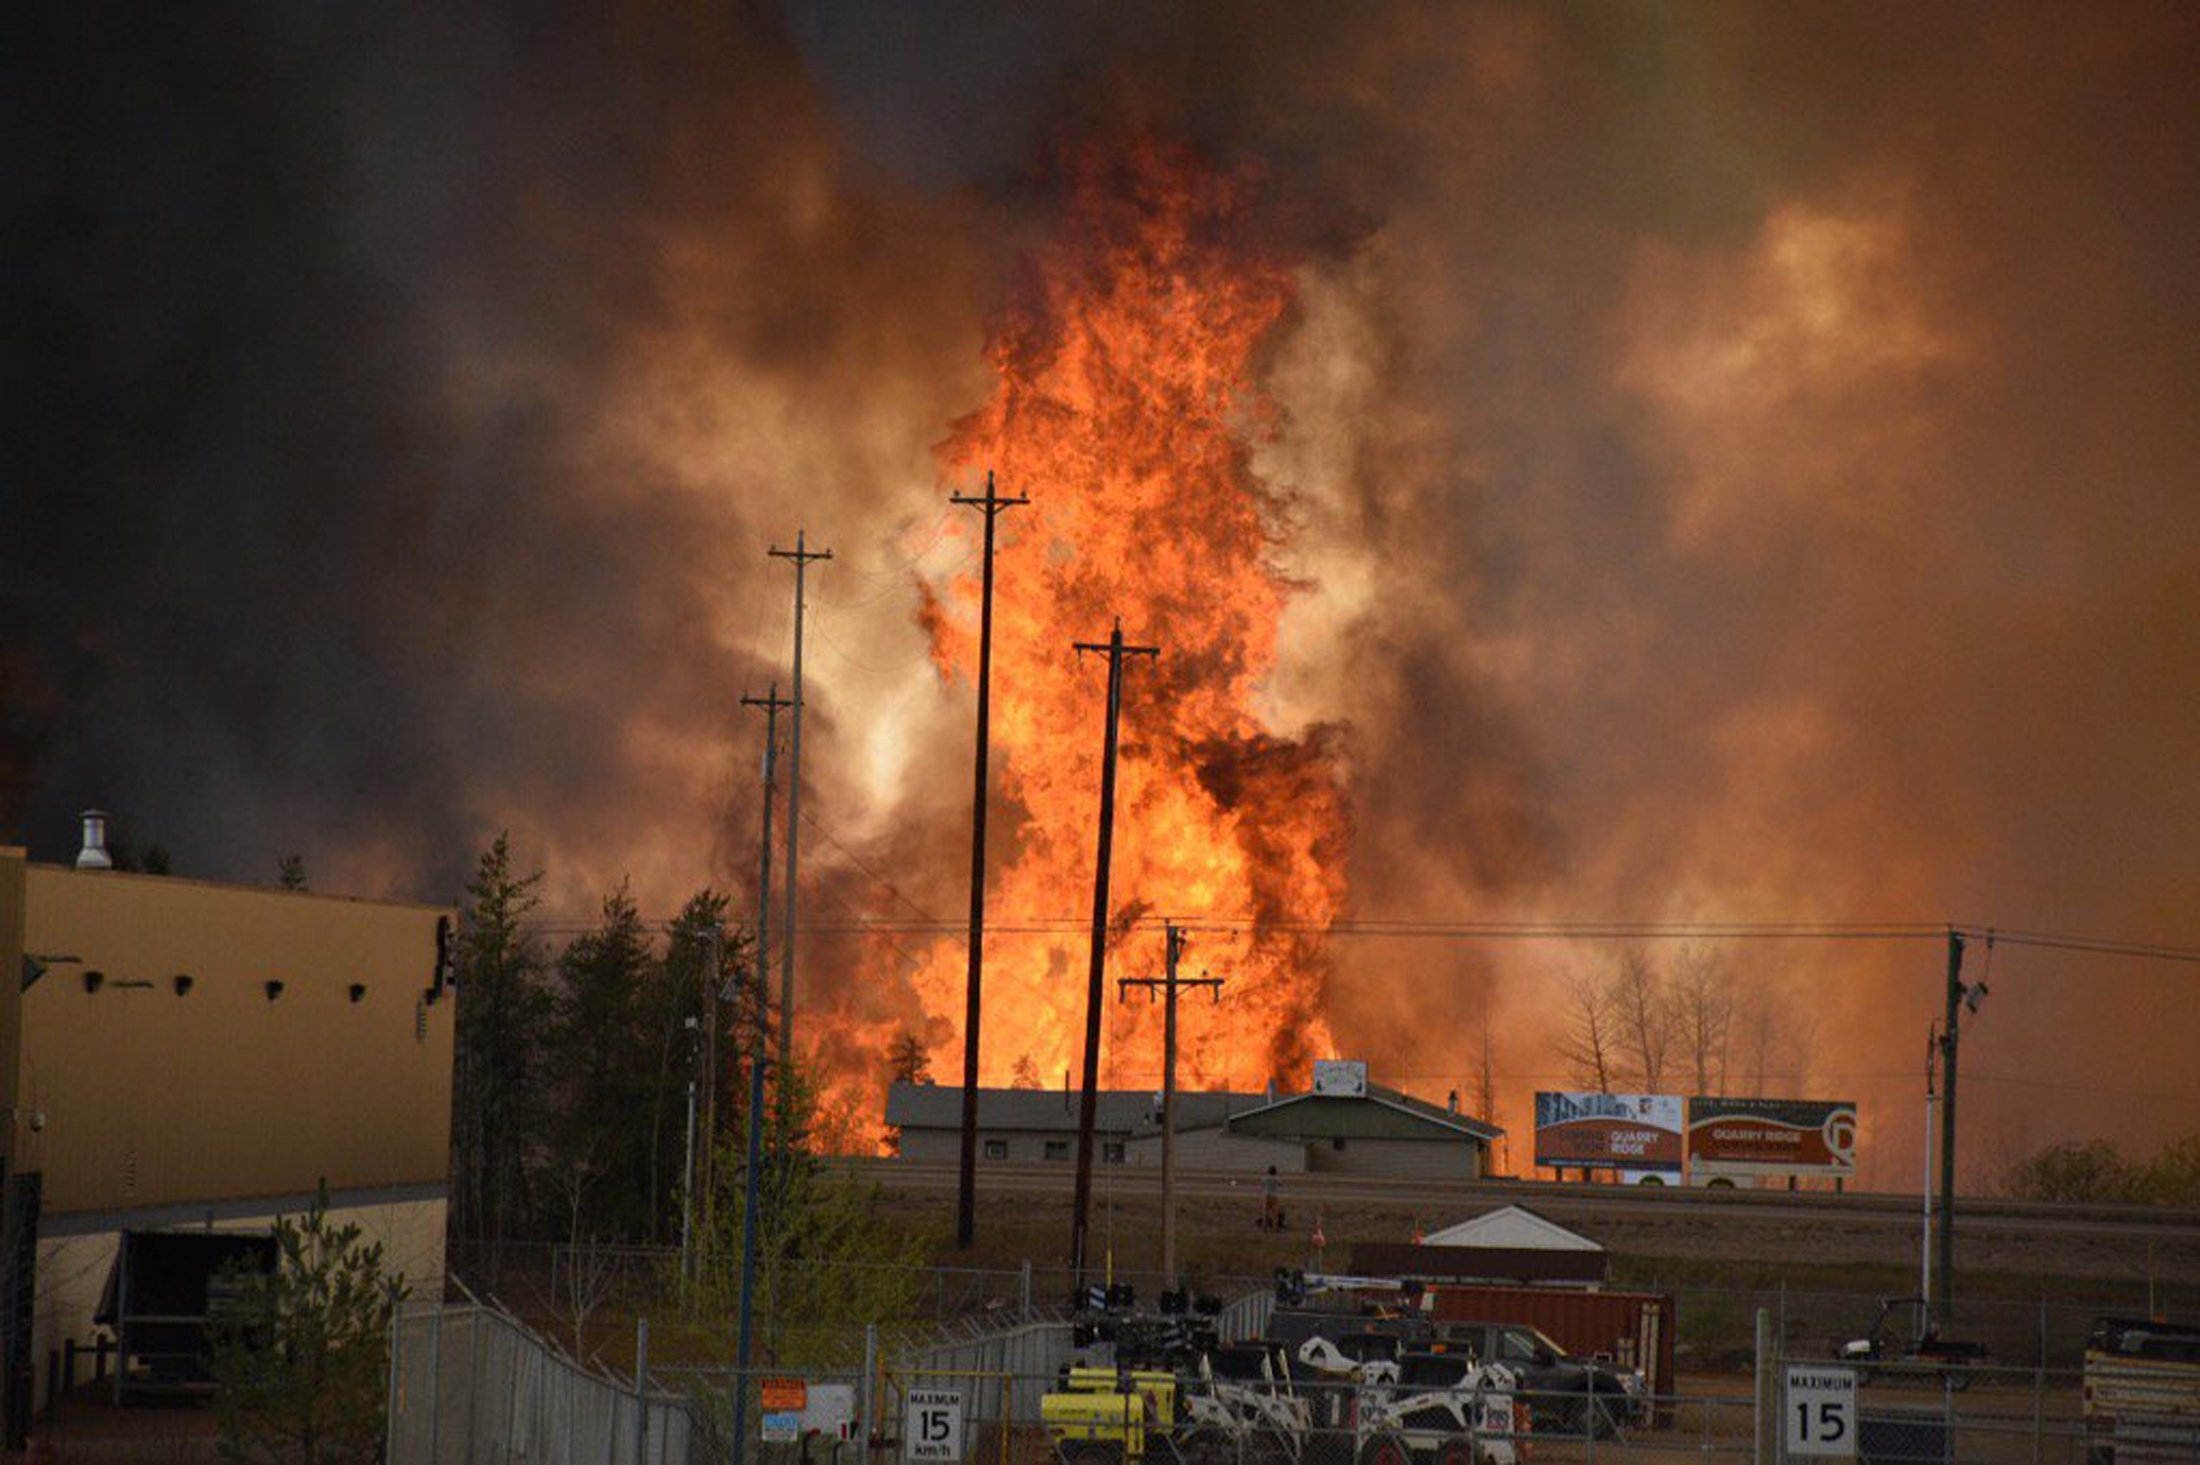 Flames rise in Industrial area south Fort McMurray, Alberta Canada May 3, 2016. The whole city of Fort McMurray, Alberta, the gateway to Canada's oil sands region, is under a mandatory evacuation order because of an uncontrolled wildfire that is rapidly spreading, local authorities said on Tuesday. Courtesy CBC News/Handout via REUTERS ATTENTION EDITORS - THIS IMAGE WAS PROVIDED BY A THIRD PARTY. EDITORIAL USE ONLY. NO RESALES. NO ARCHIVE. MANDATORY CREDIT. ONE TIME USE ONLY